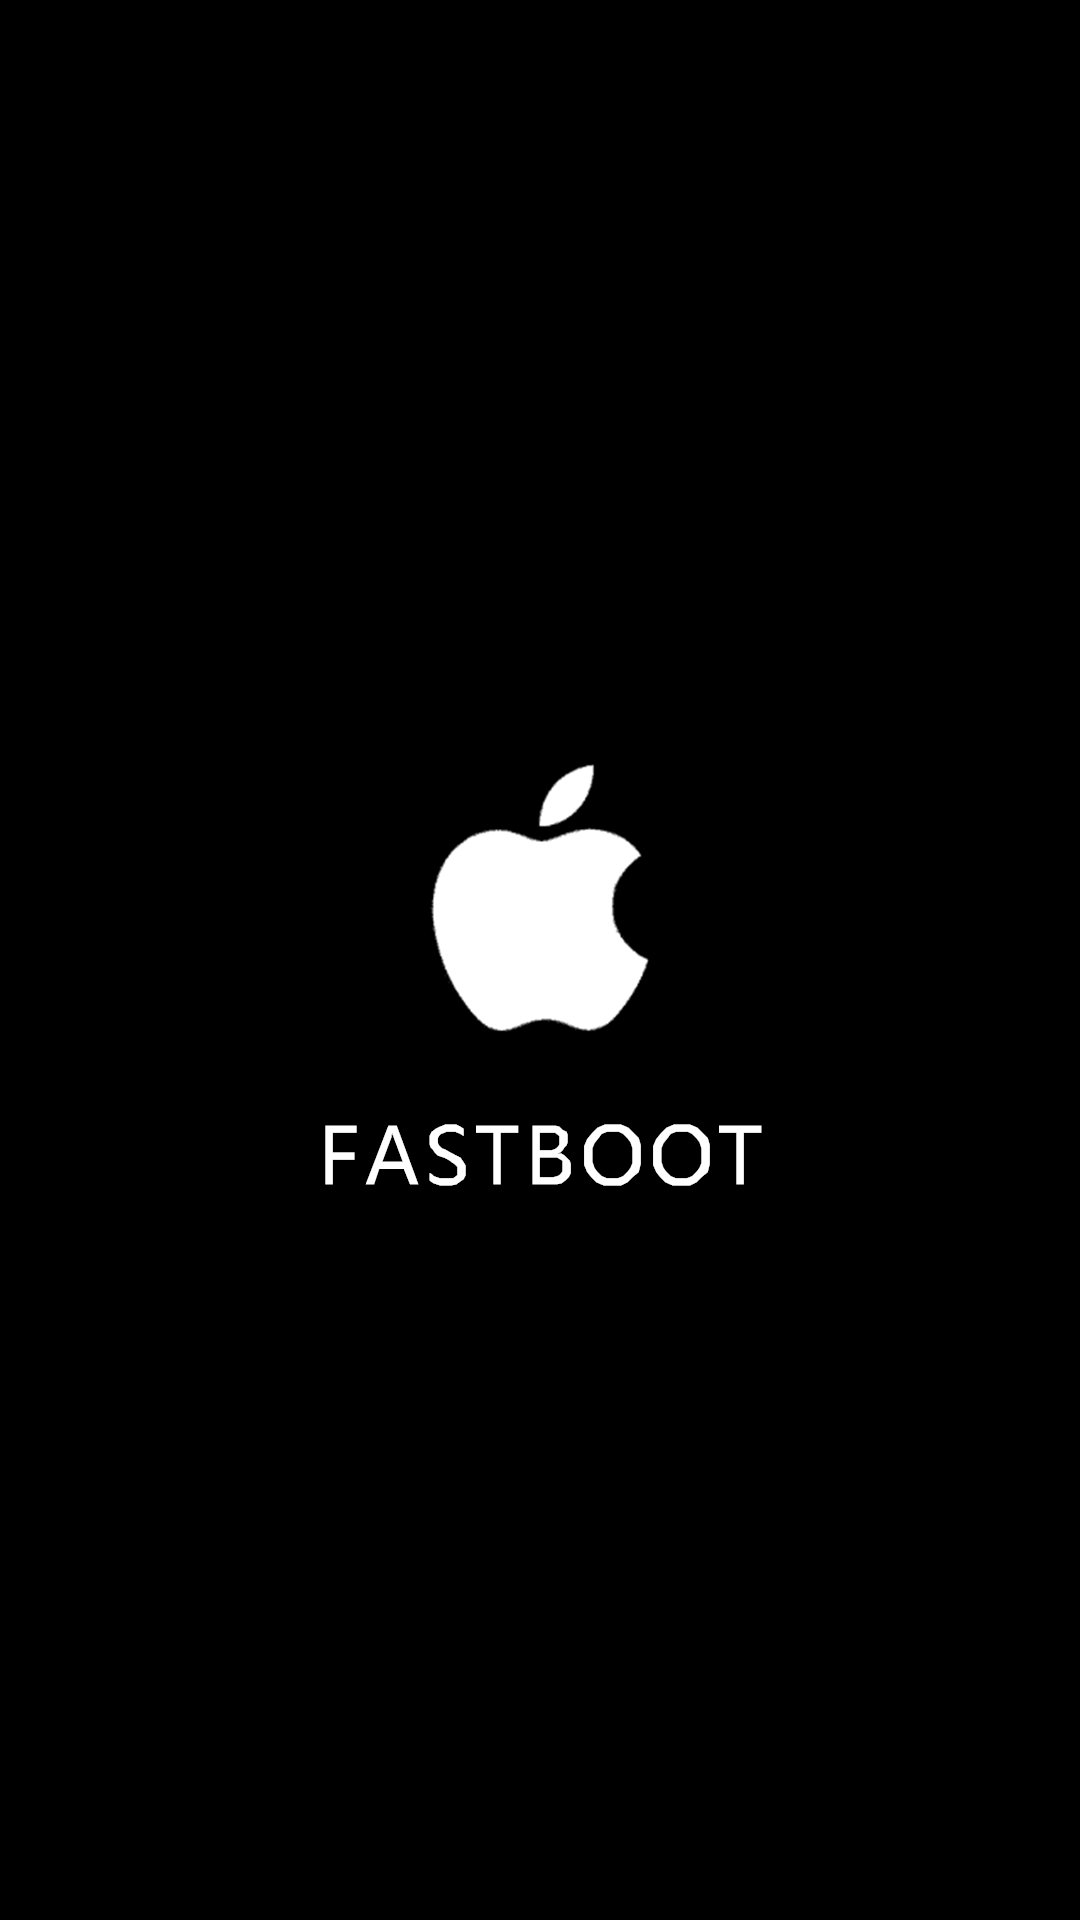 fastboot.png